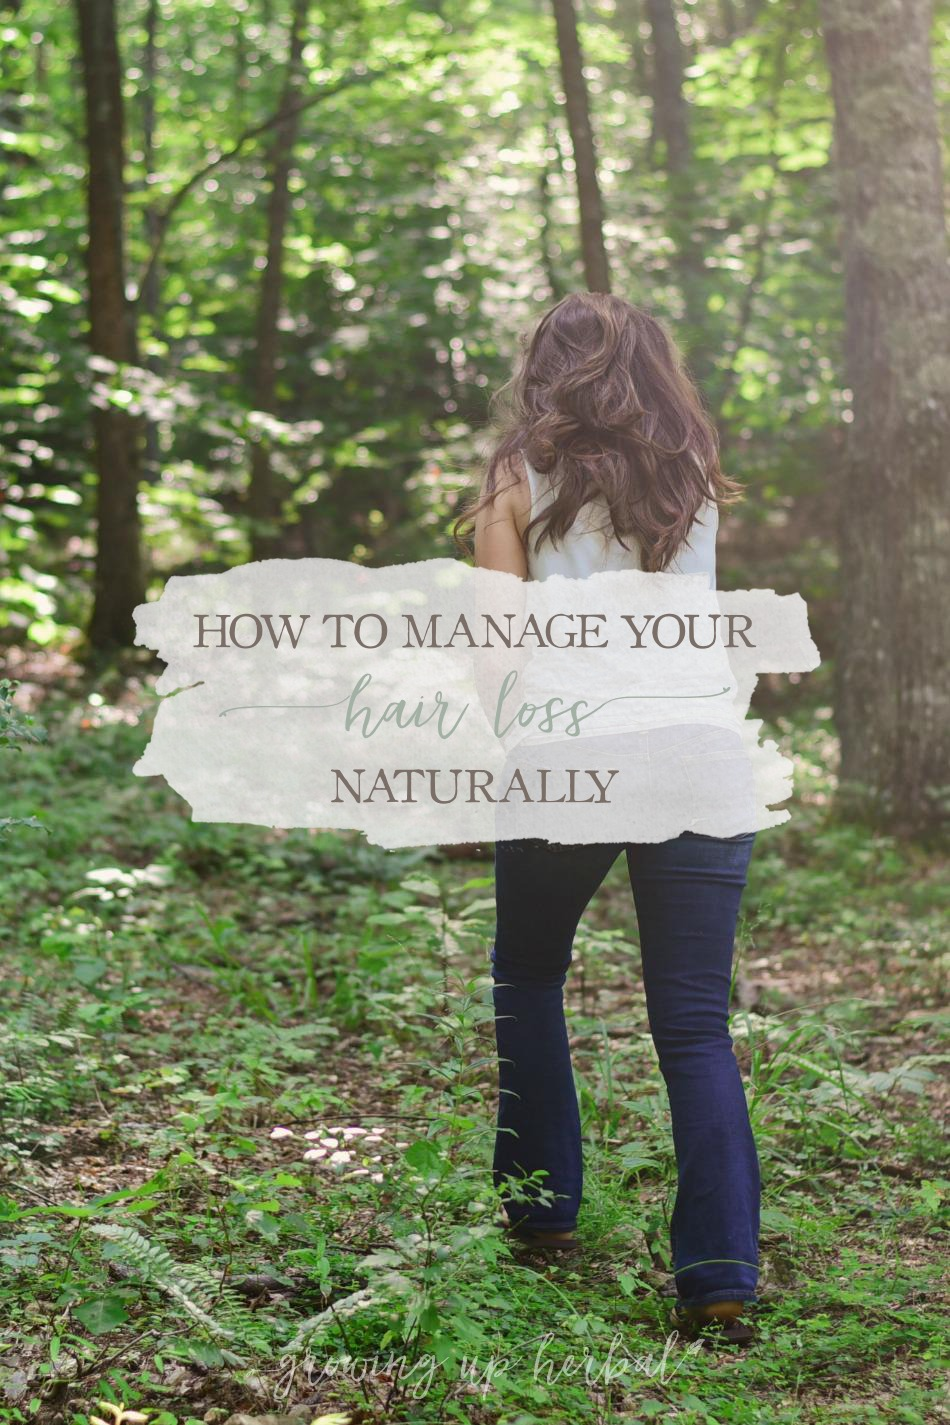 How To Manage Your Hair Loss Naturally | Growing Up Herbal | Have thinning hair or noticeable hair loss? There are things you can do to minimize and reverse hair loss, naturally! Get more info here!